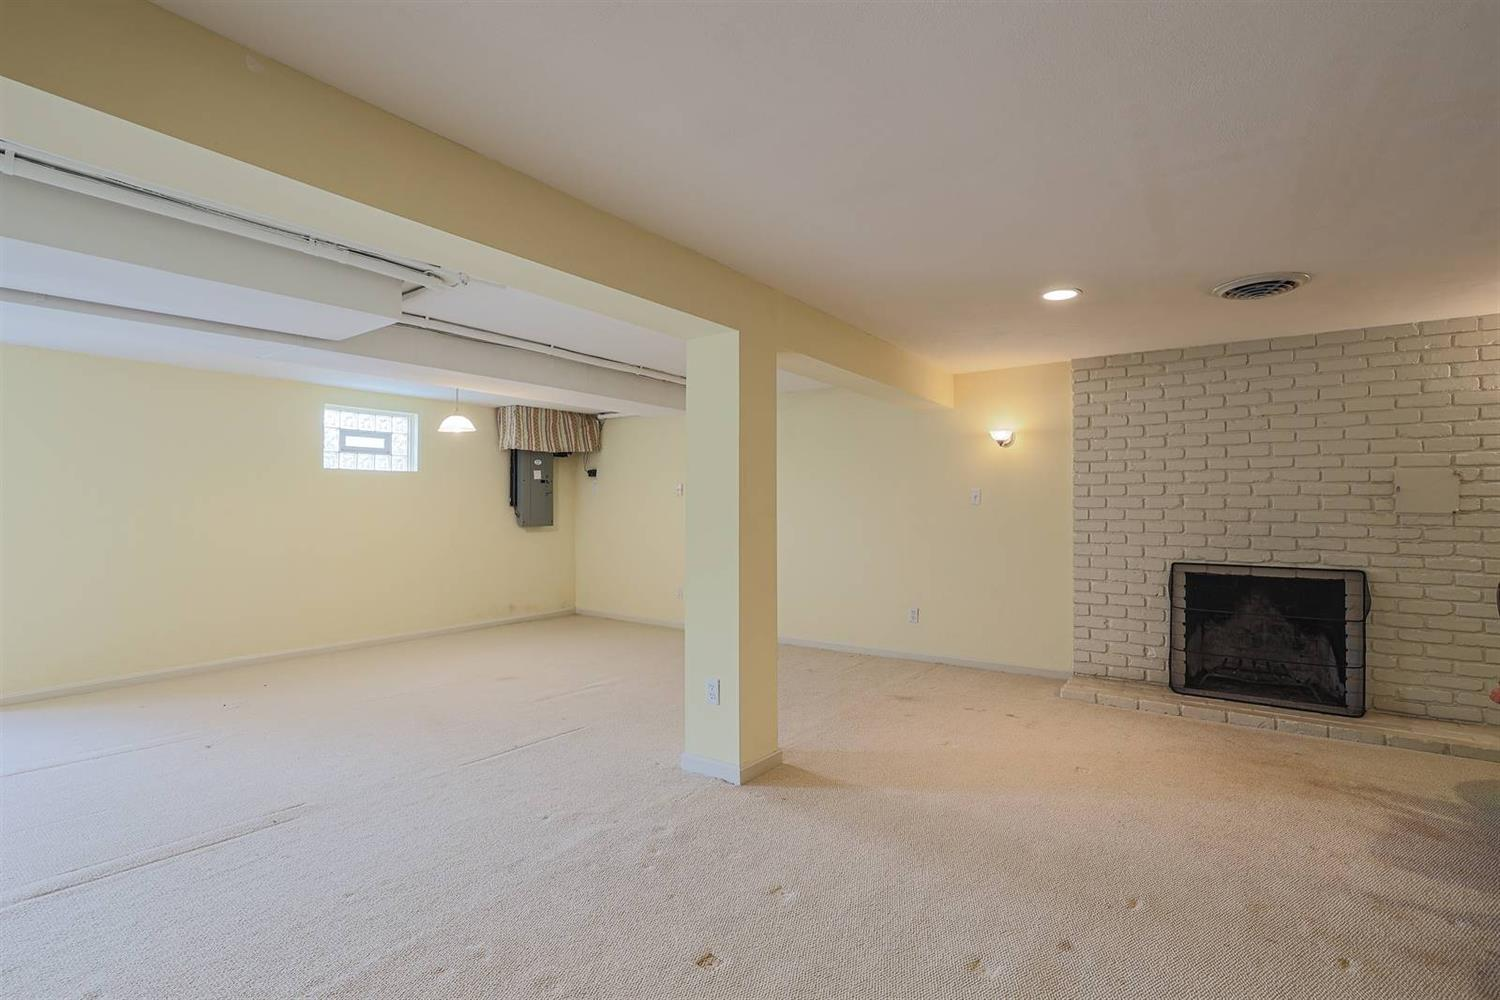 8000 Blome Road Property Photo 28